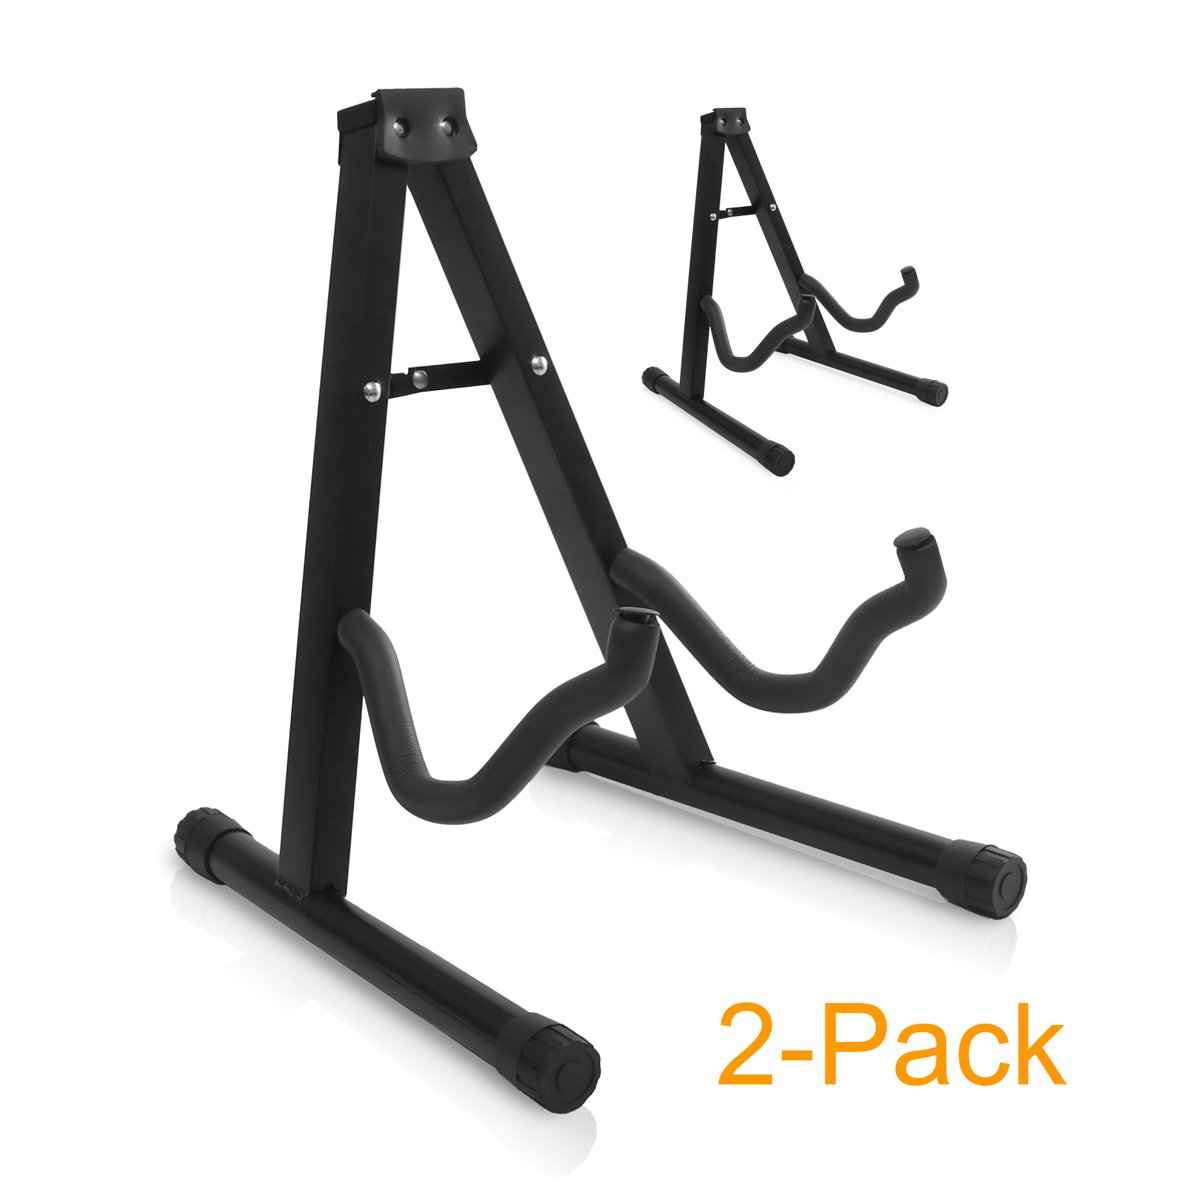 9horn Foldable Guitar Stand for Accoustic Electric Bass Guitars 2-Pack